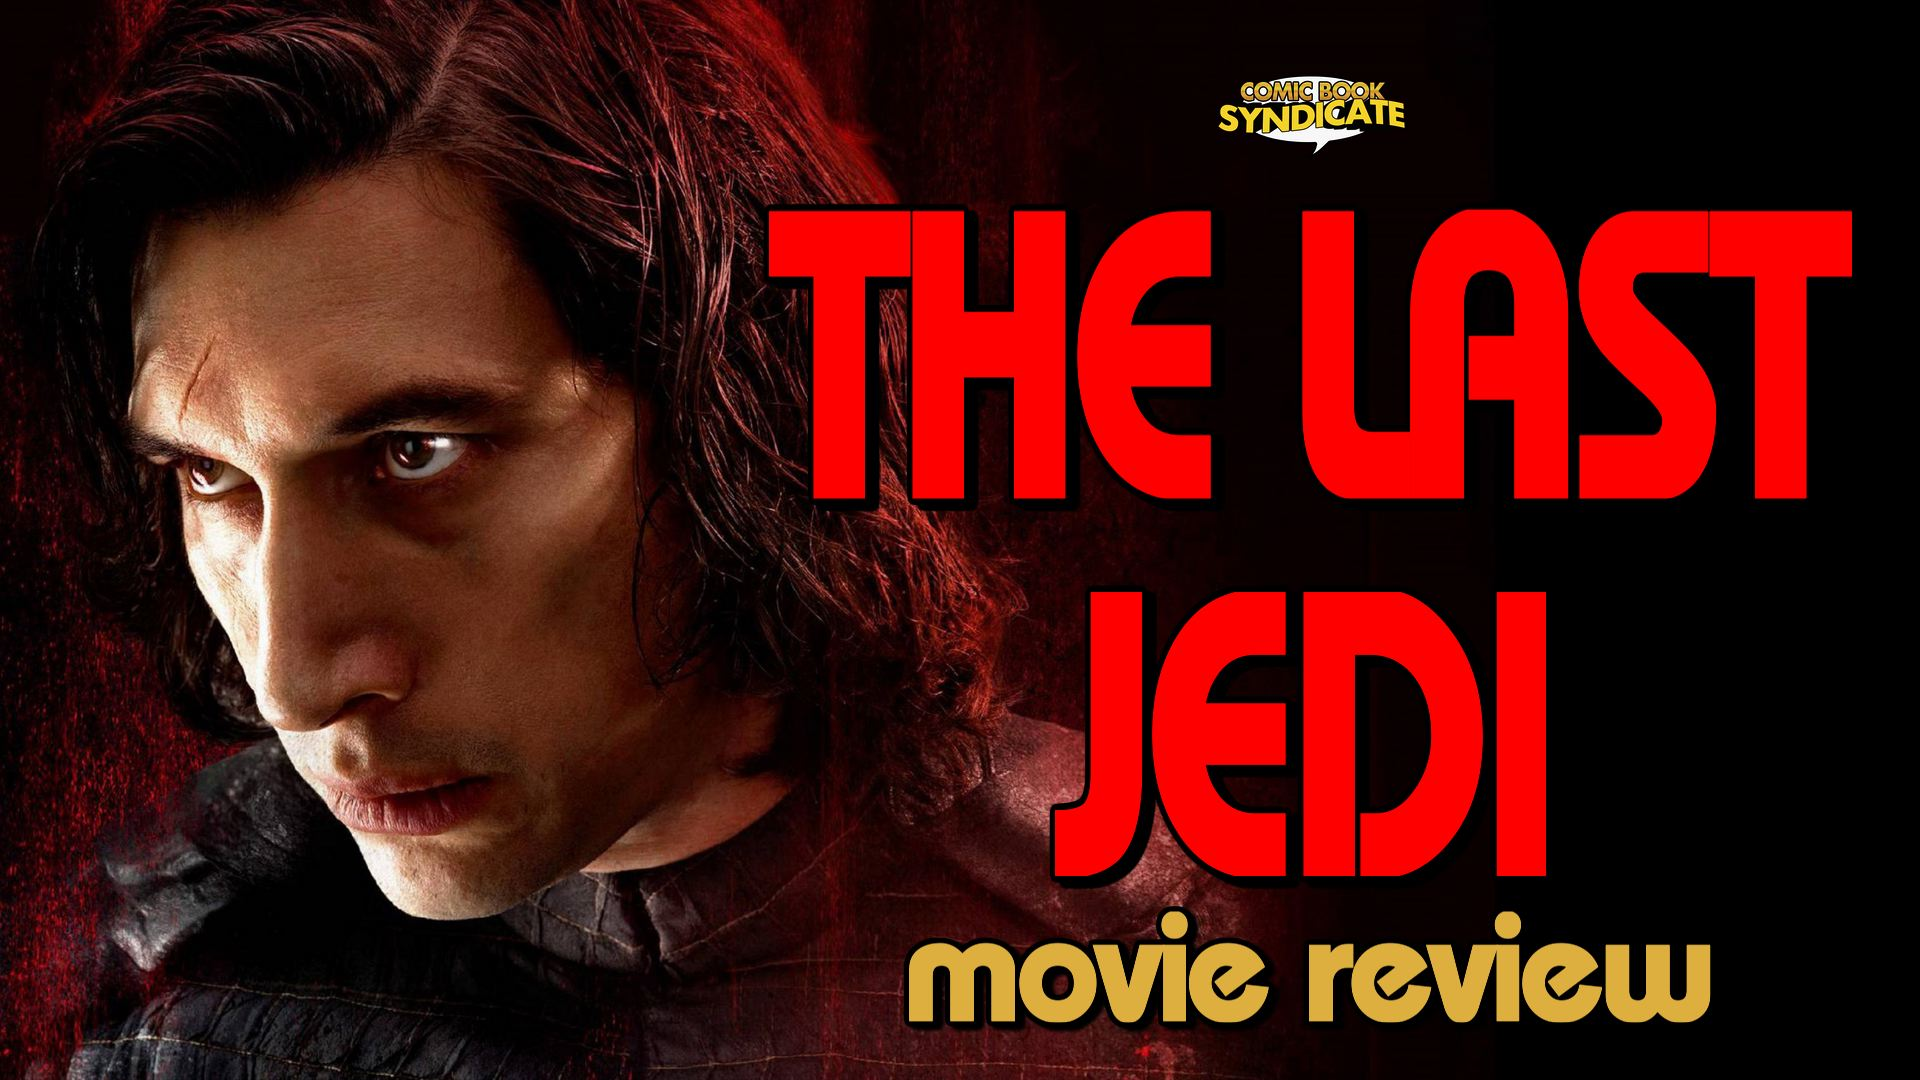 Star Wars - The Last Jedi (review)